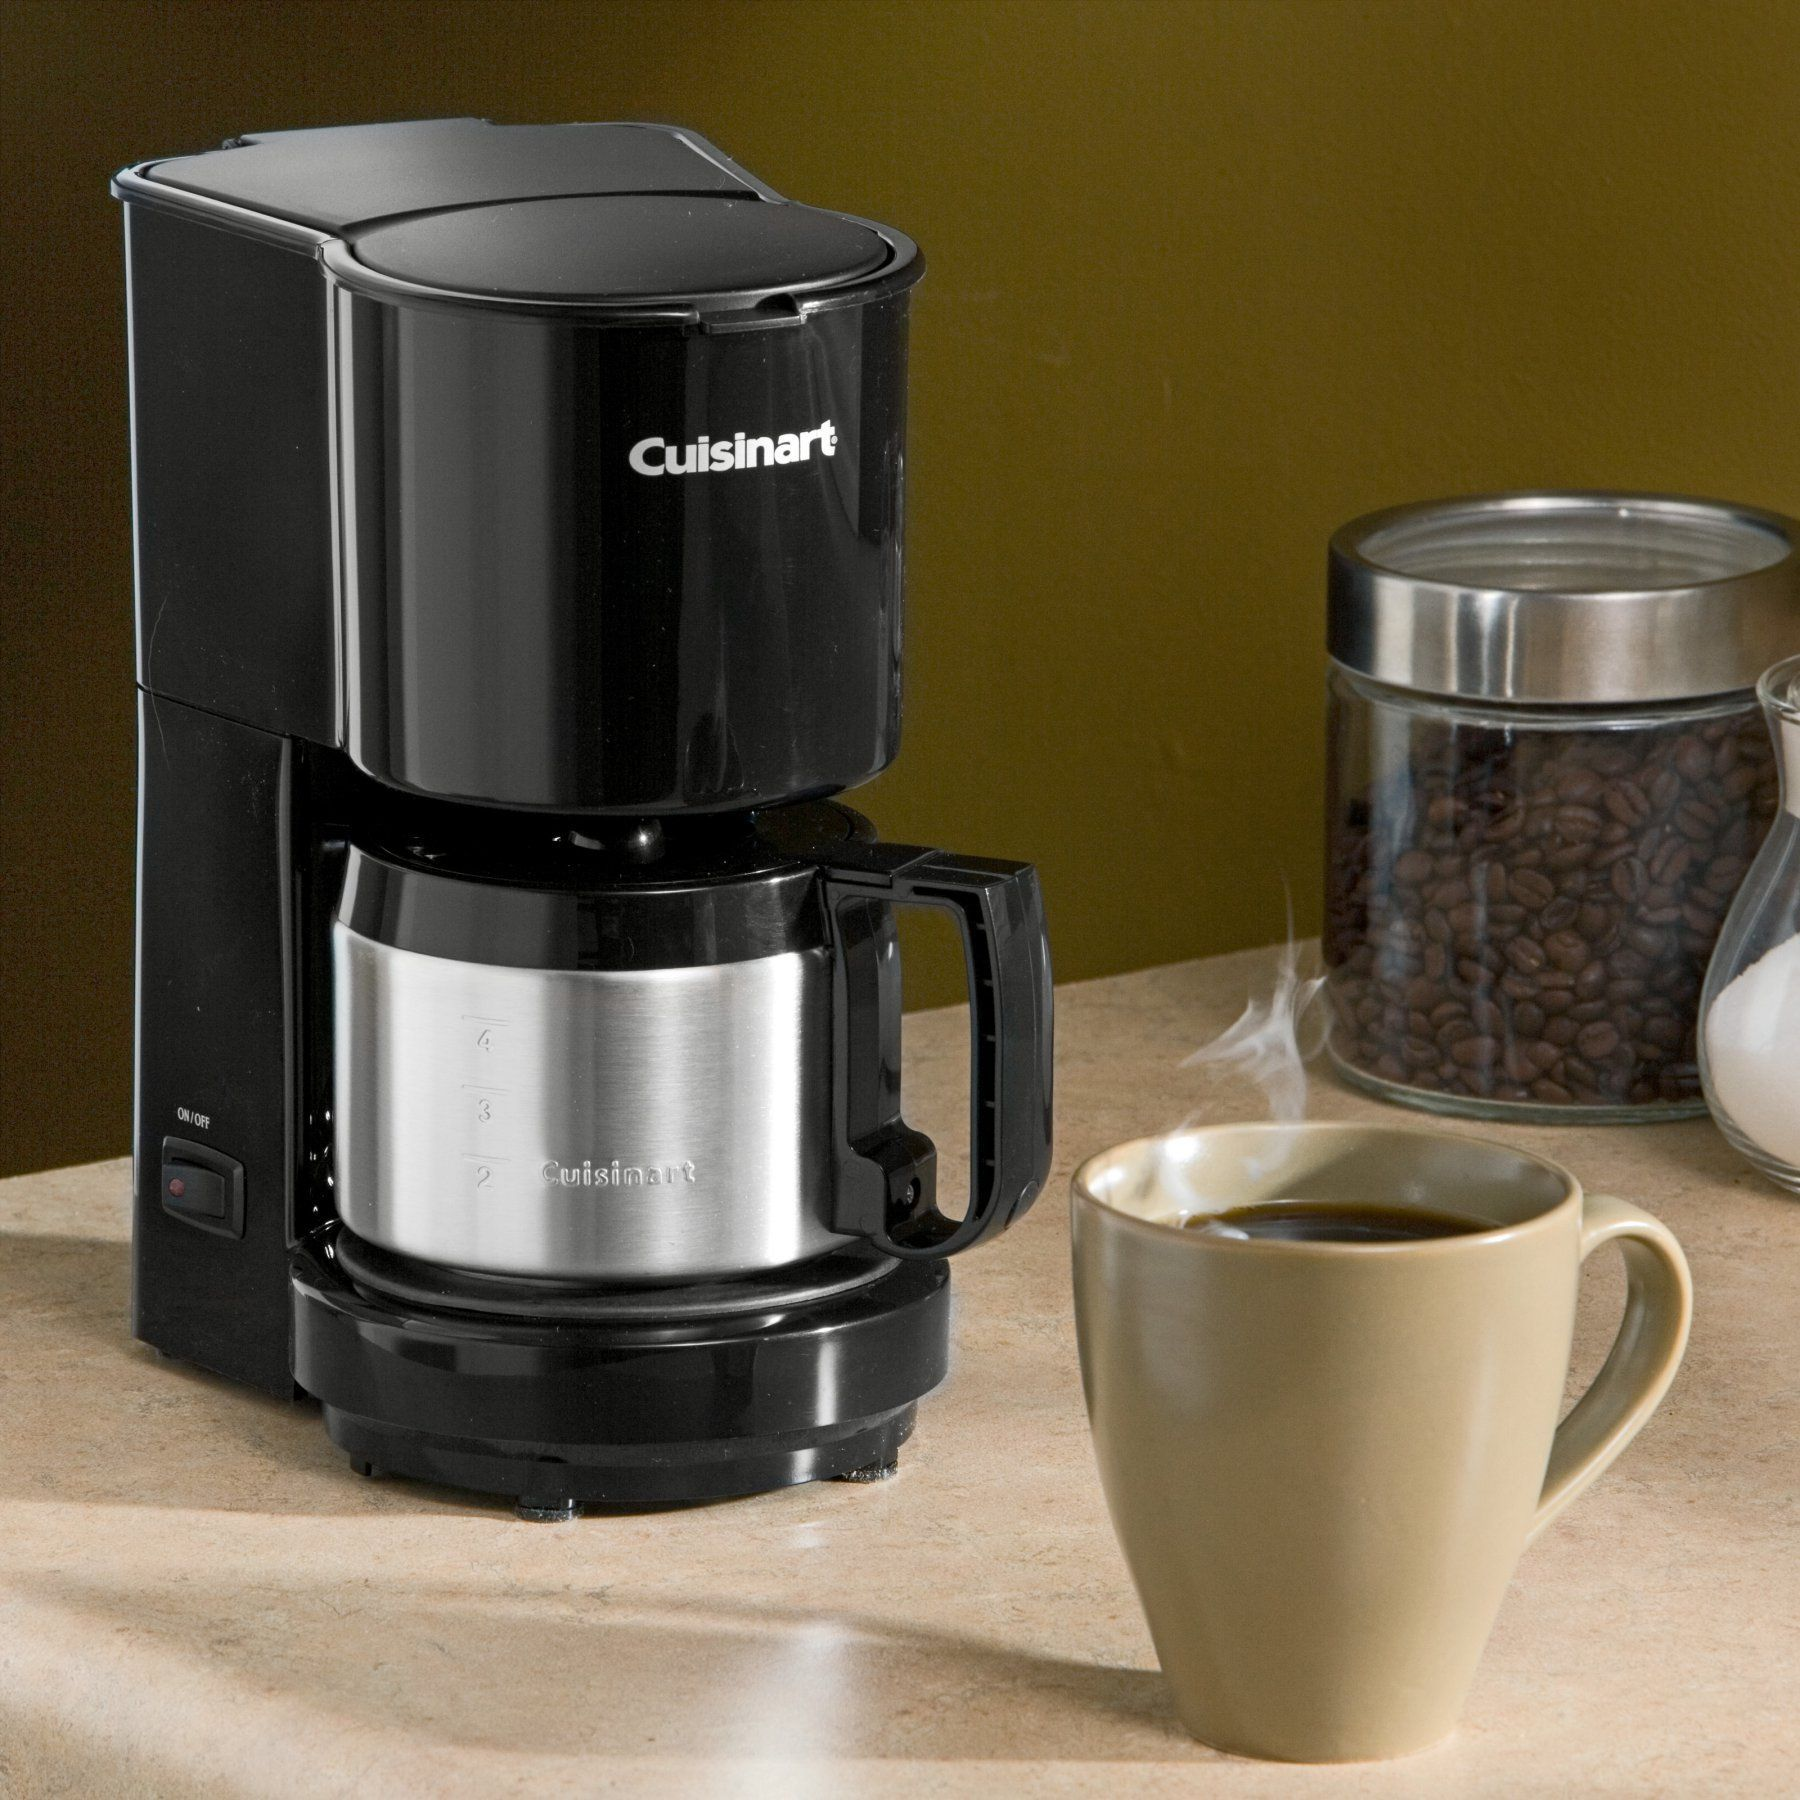 Cuisinart Dcc 450 4 Cup Coffee Maker With Stainless Steel Carafe Black Coffee Maker 4 Cup Coffee Maker Melitta Coffee Maker